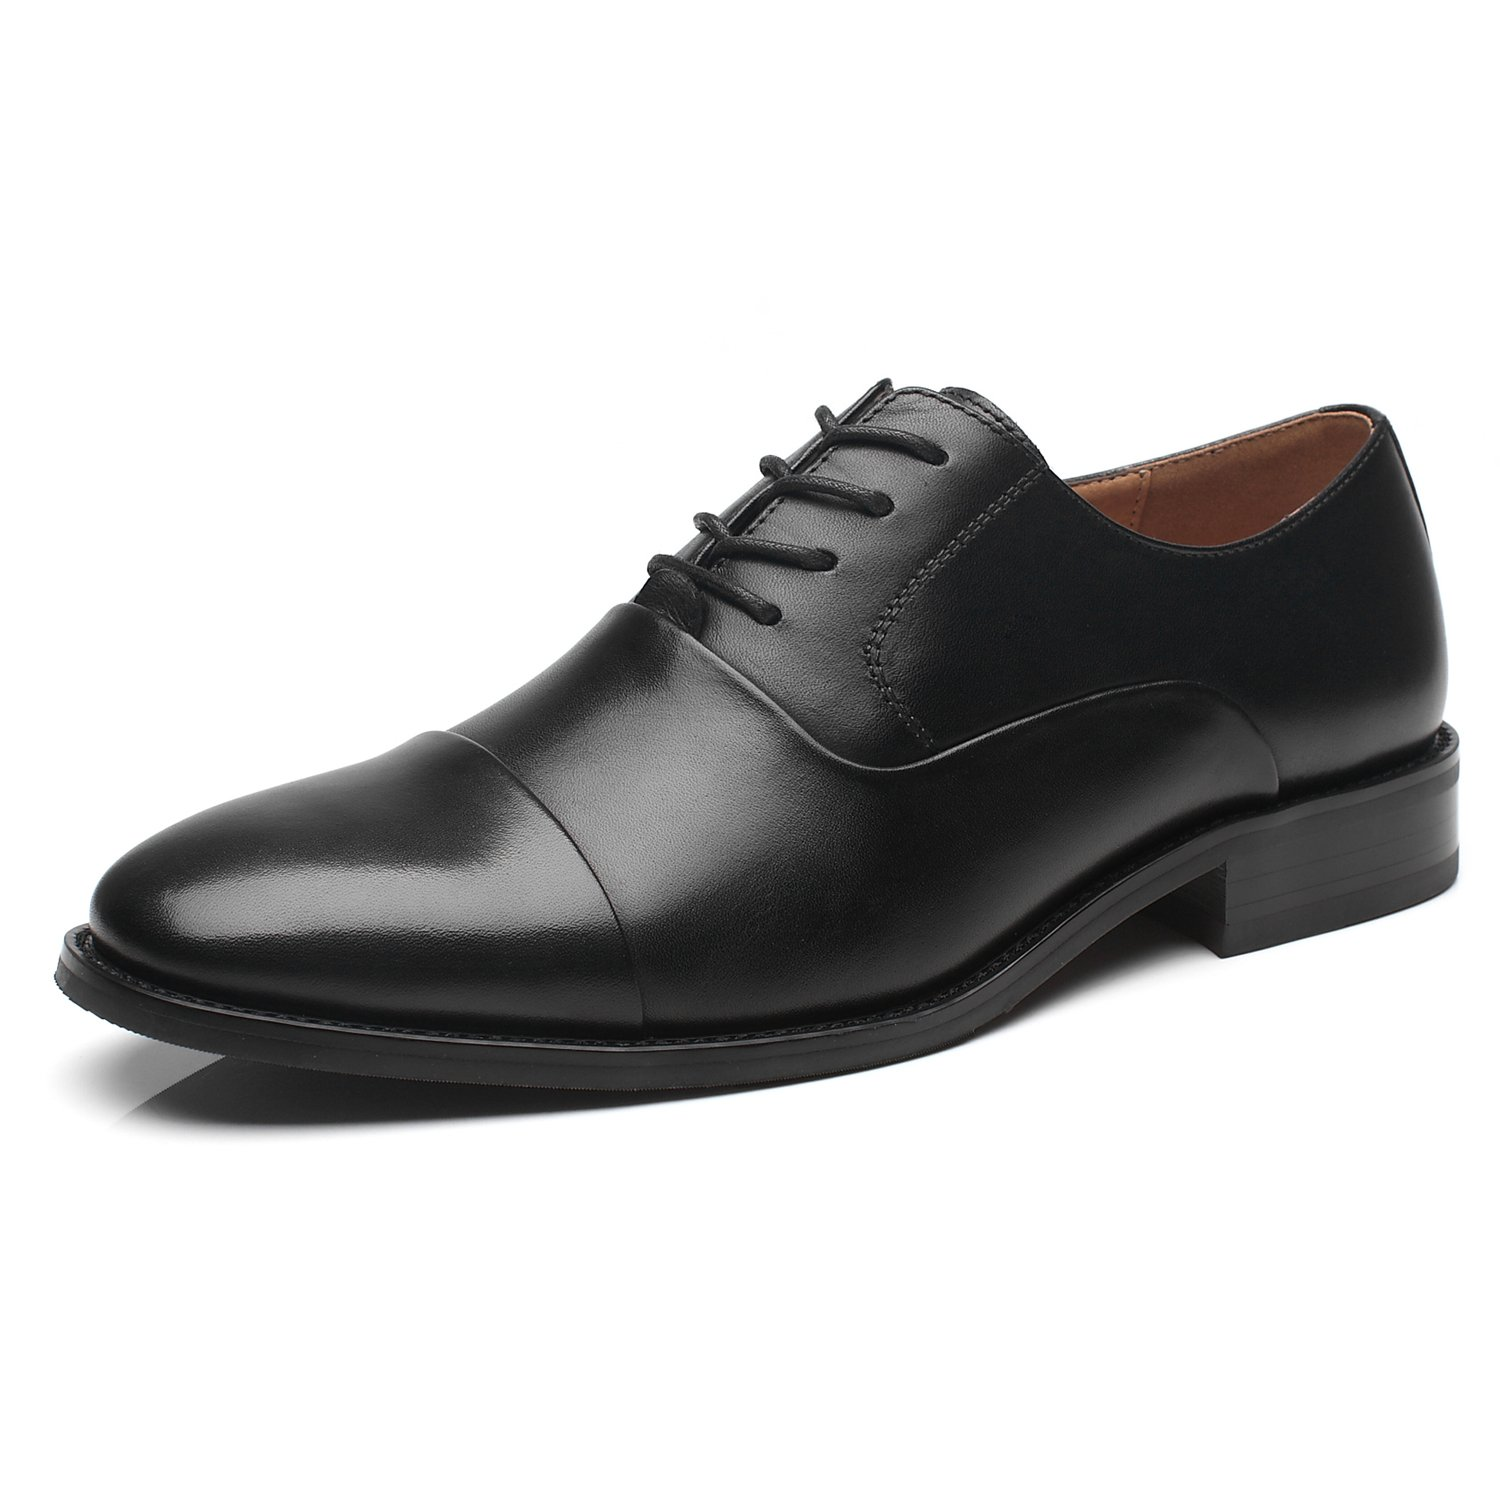 La Milano Men's Oxfords Classic Modern Round Captoe Shoes